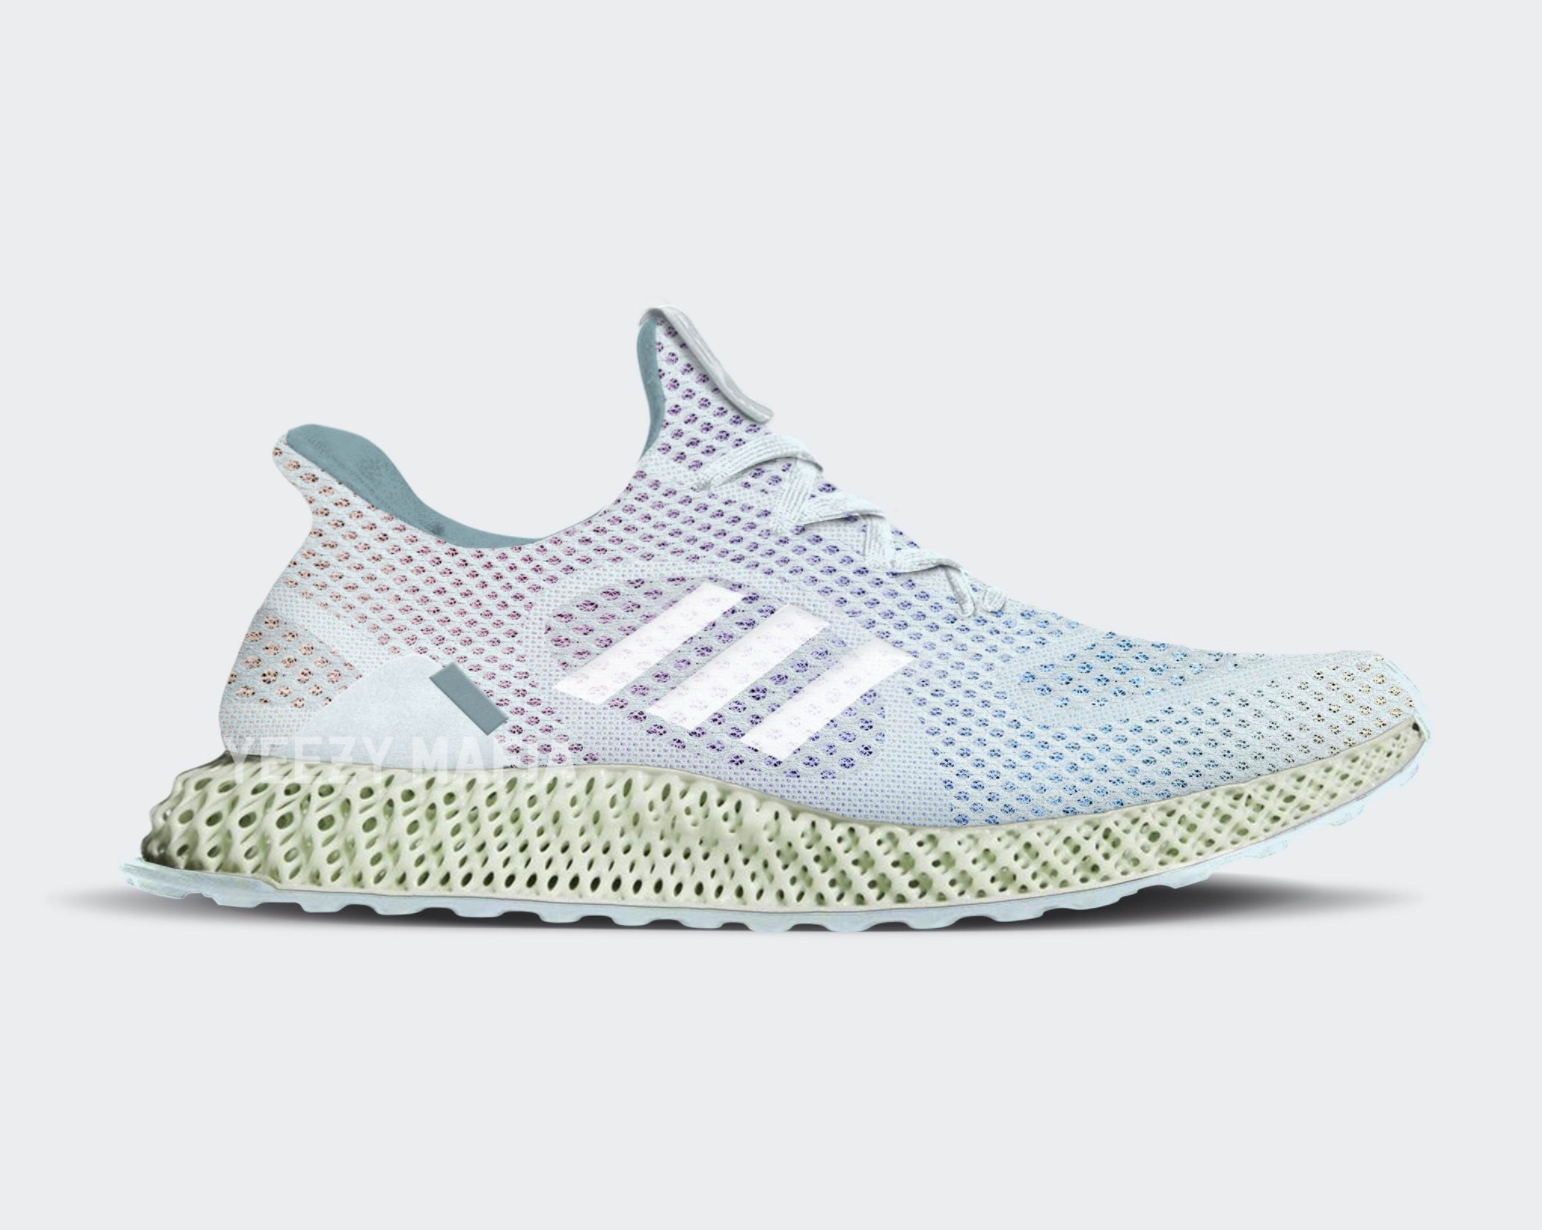 check out 41c91 5d3b1 The adidas FutureCraft 4D Runner Will Cost Way More Than You ...